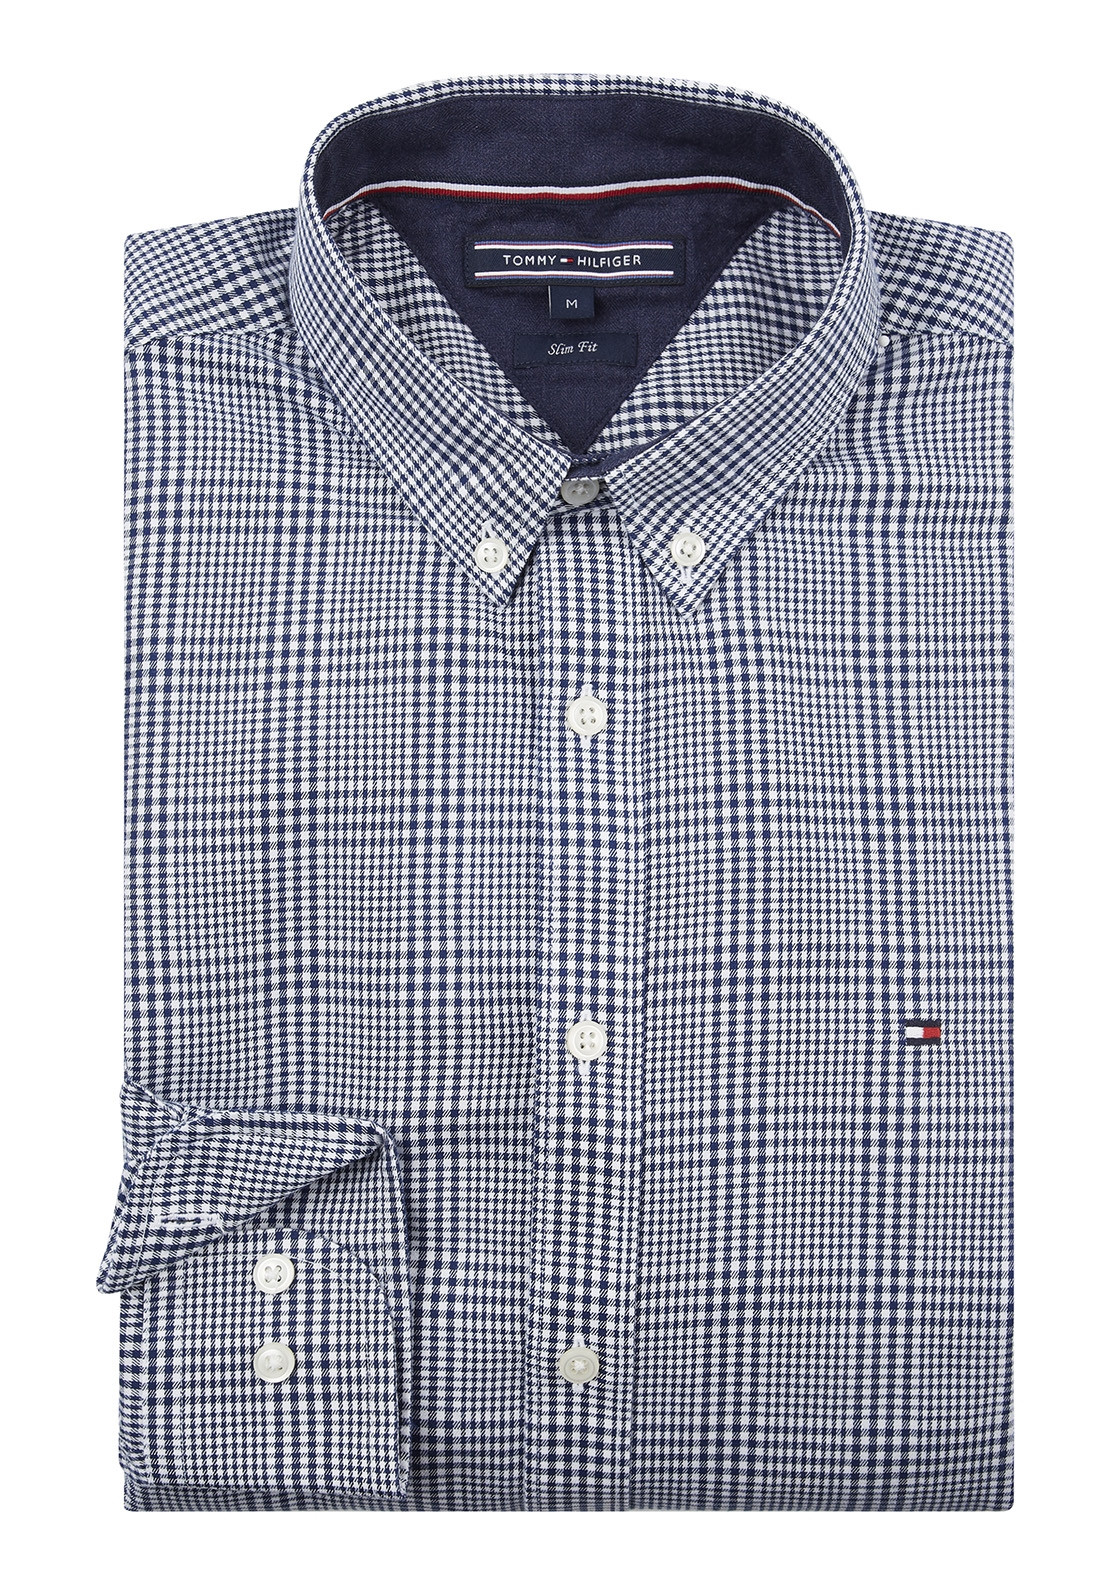 fc8983f0f3b783 Tommy Hilfiger Men s Mini Check Print Shirt